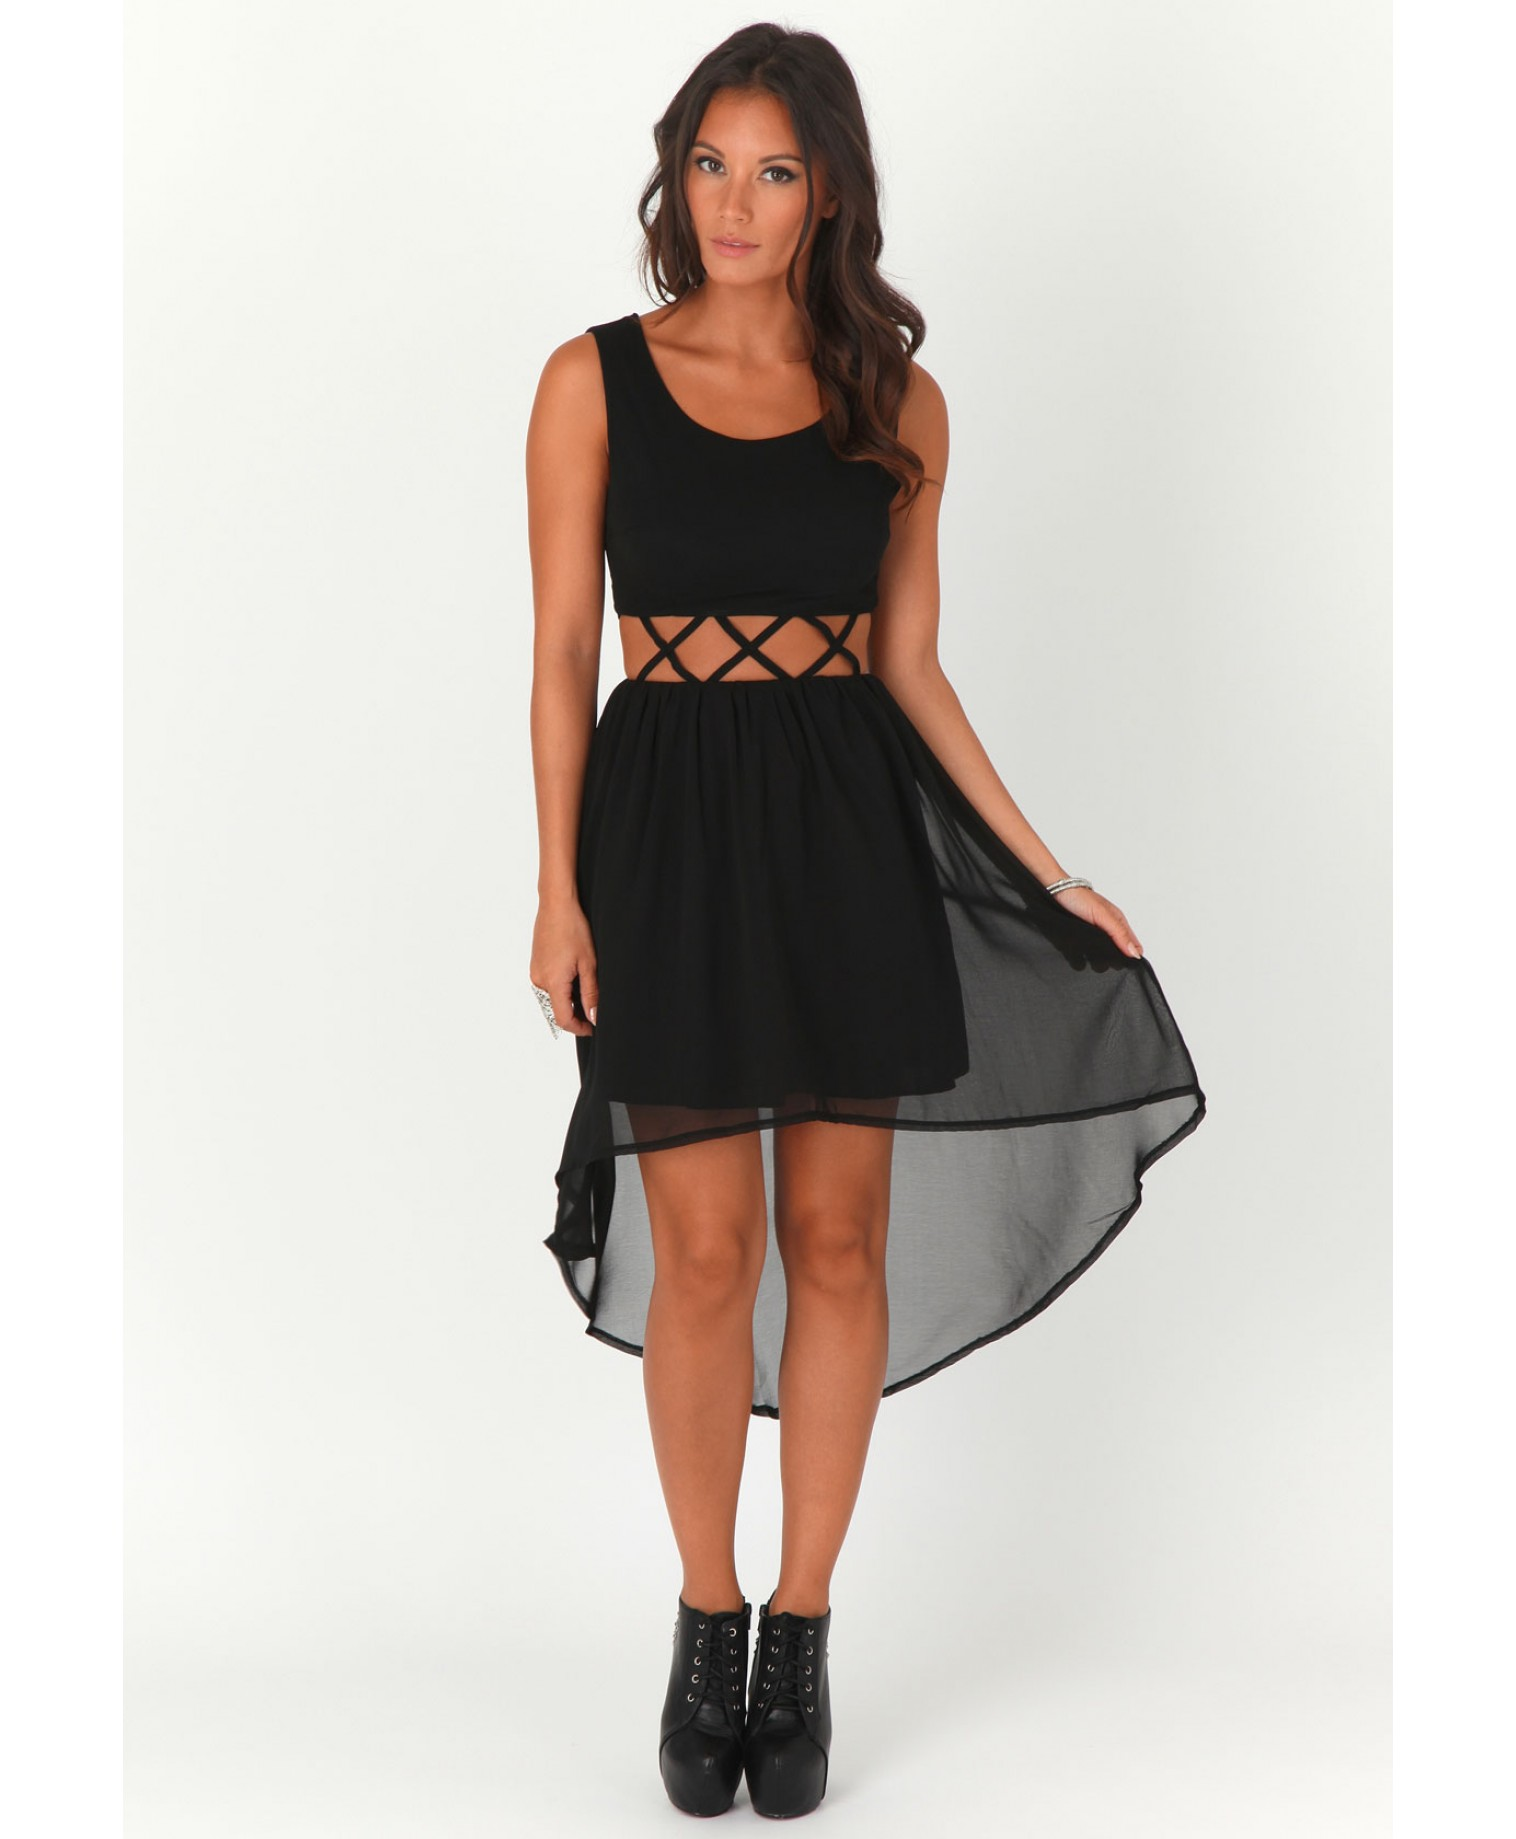 ASYMMETRIC DRESSES (8)